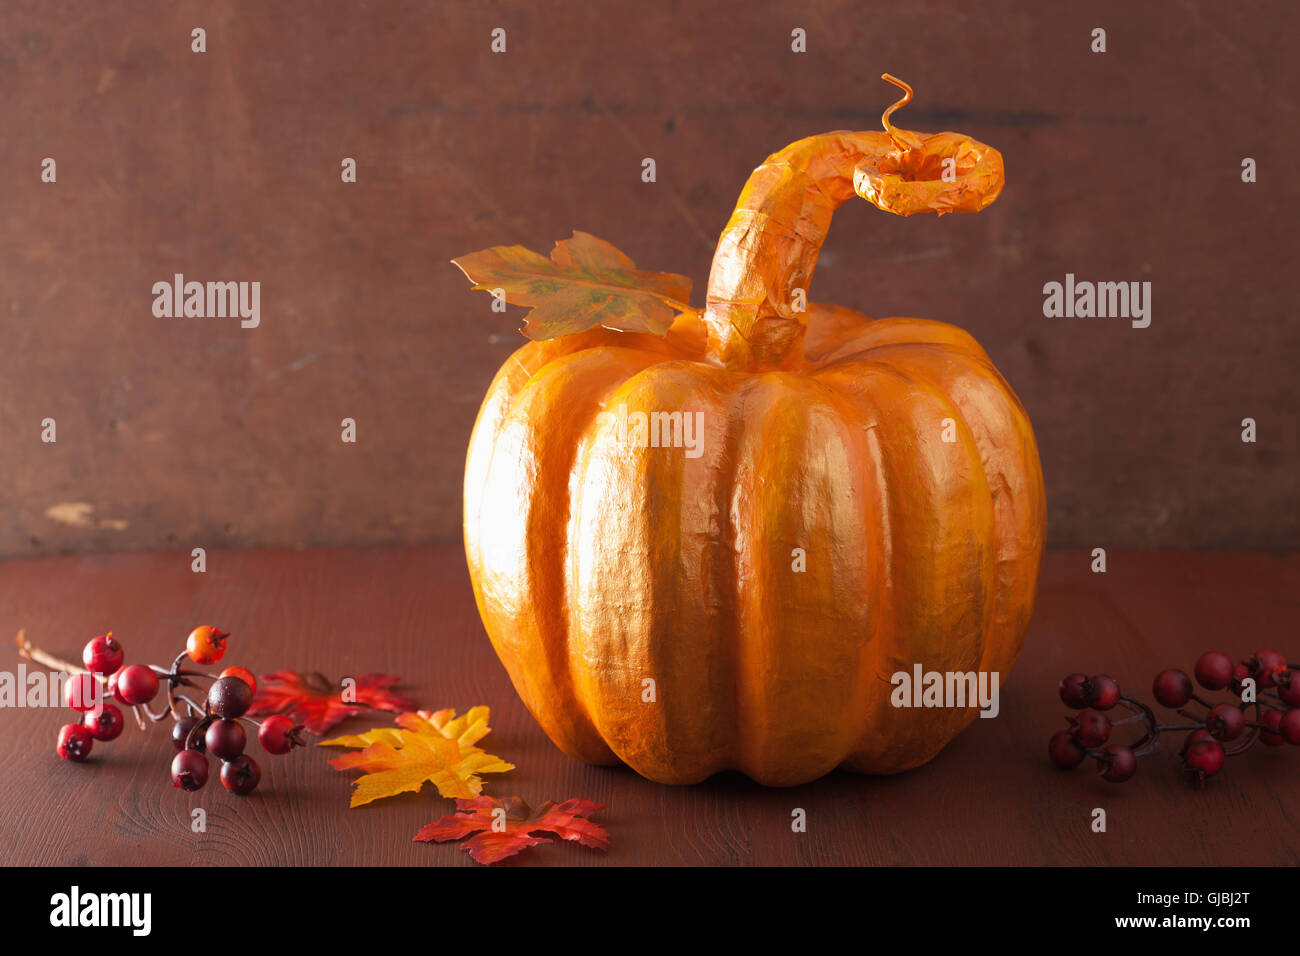 decorative golden papier-mache pumpkin and autumn leaves for halloween thanksgiving - Stock Image